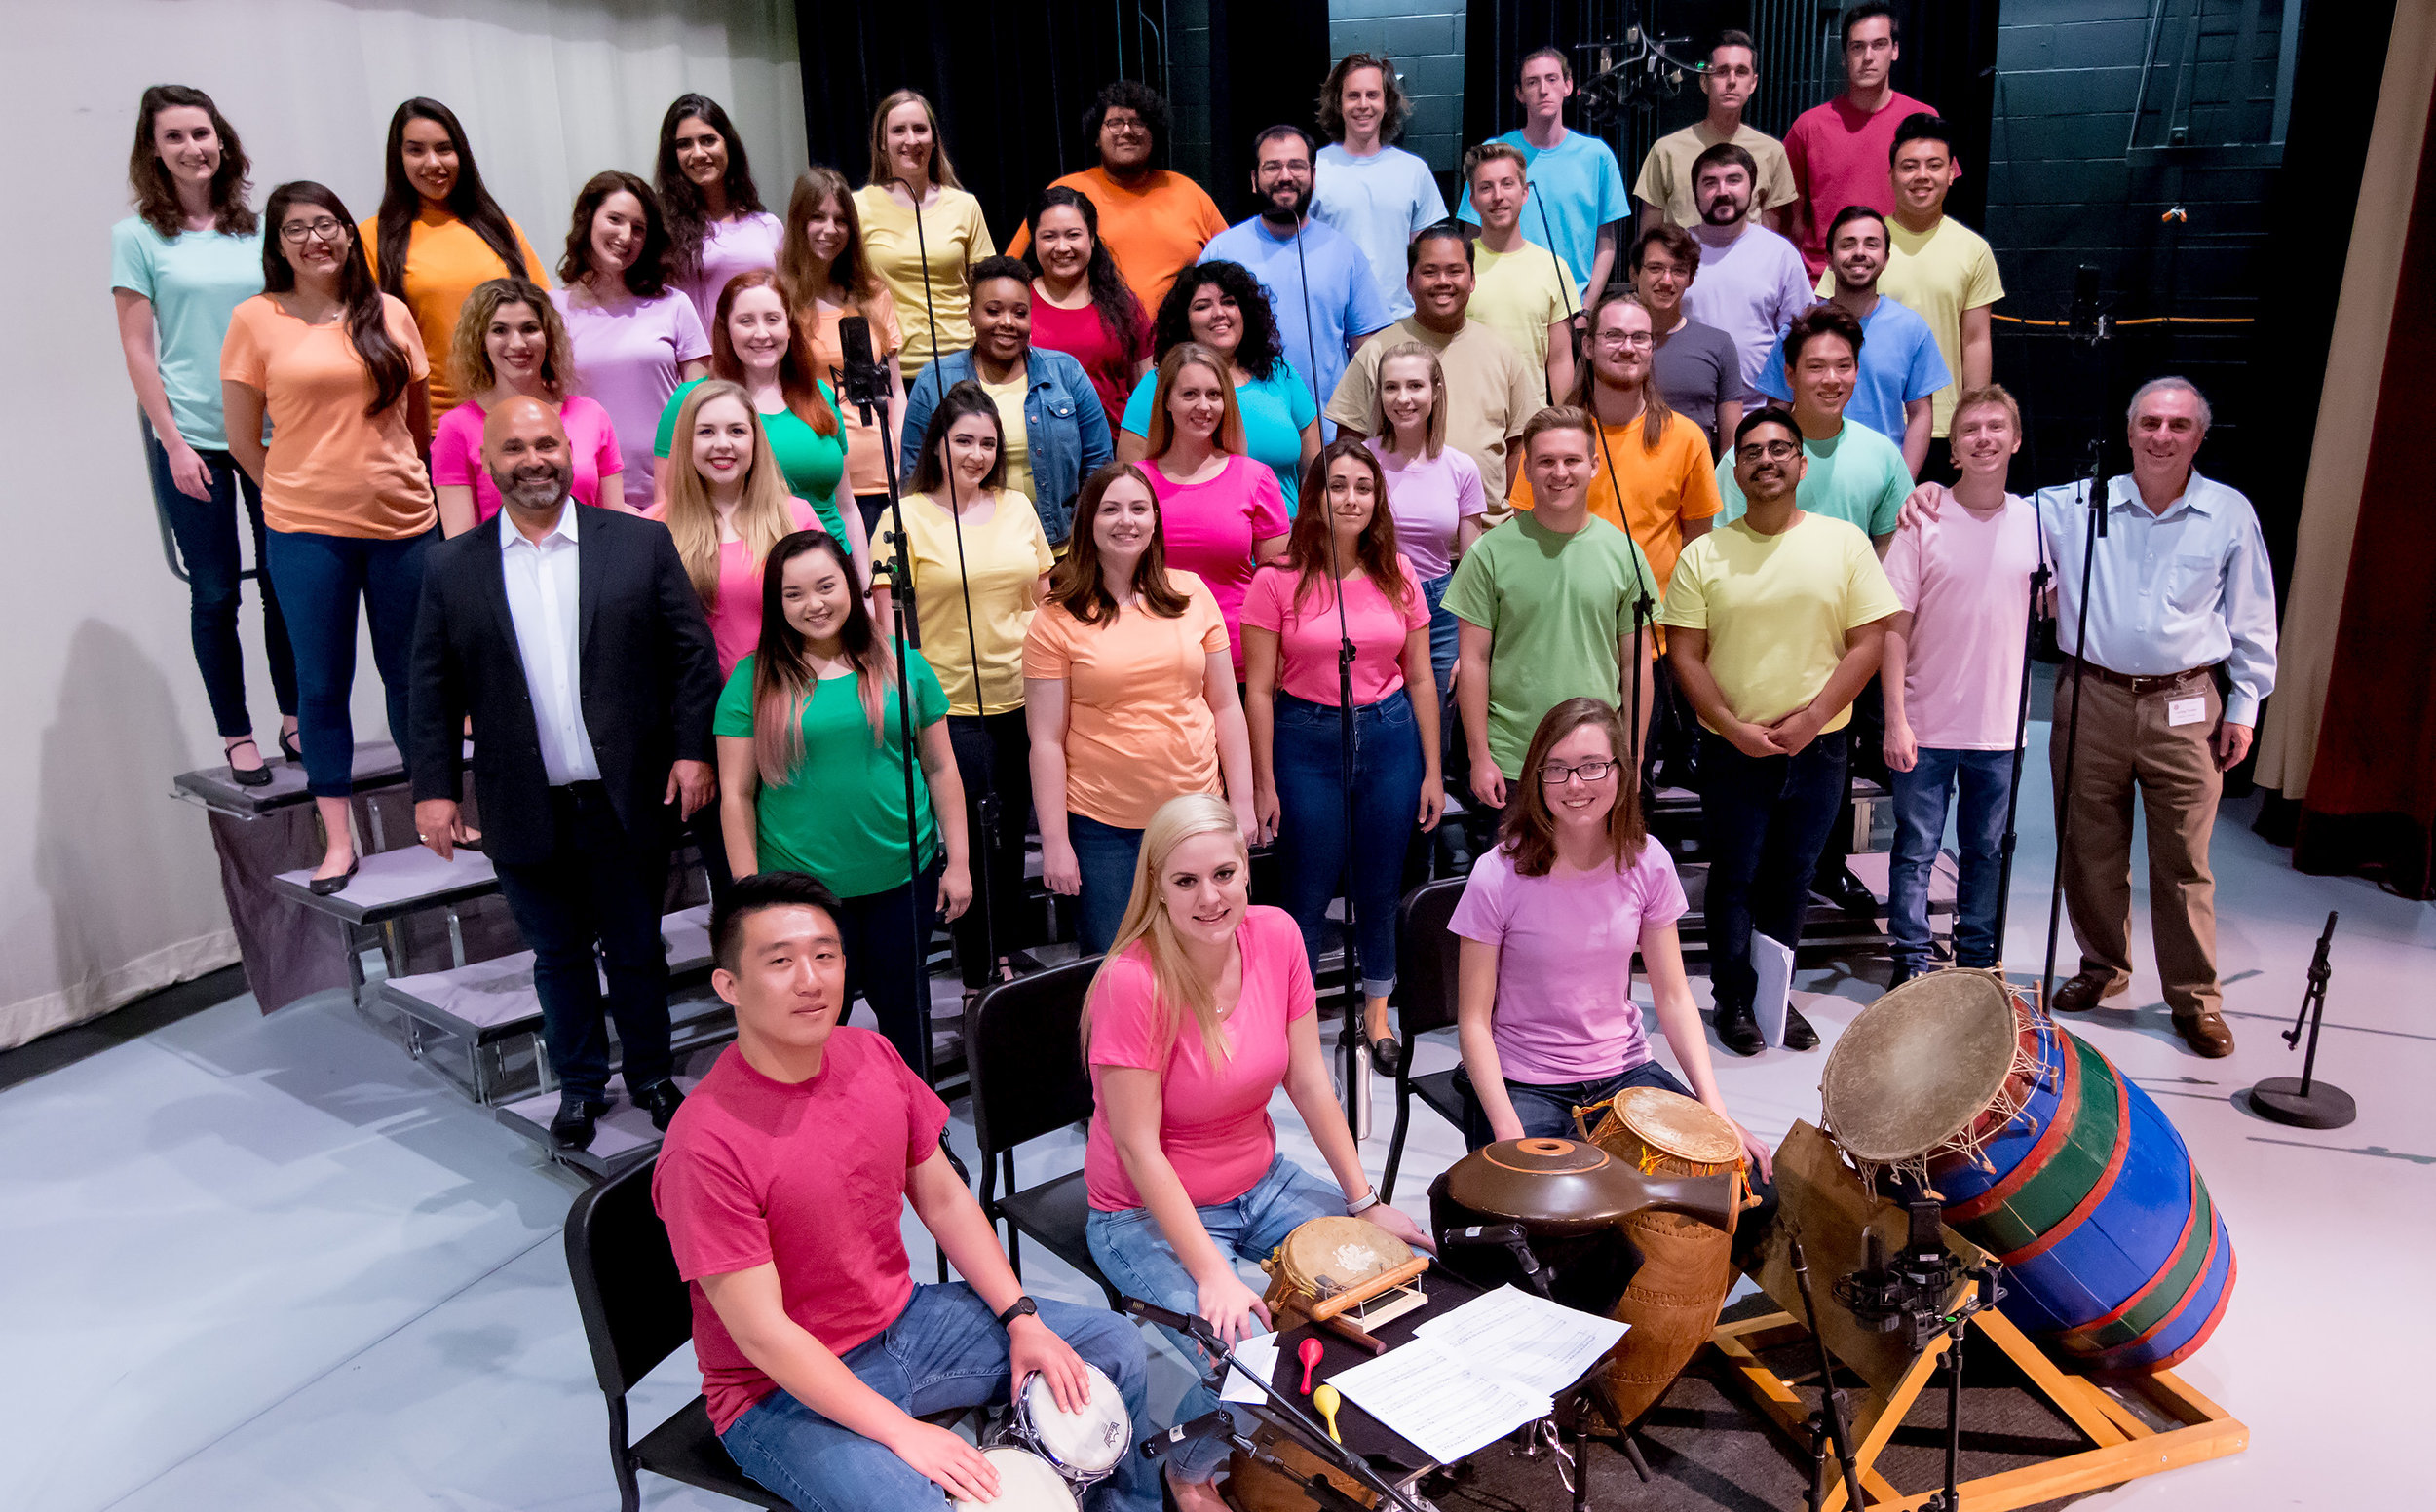 The Bob Cole Chamber Choir of CSU Long Beach on day of filming, conducted by Jonathan Talberg (2nd row, left), accompanied by percussionists Arthur Lin, Petra Elek and Bailey O'Donnell on African instruments